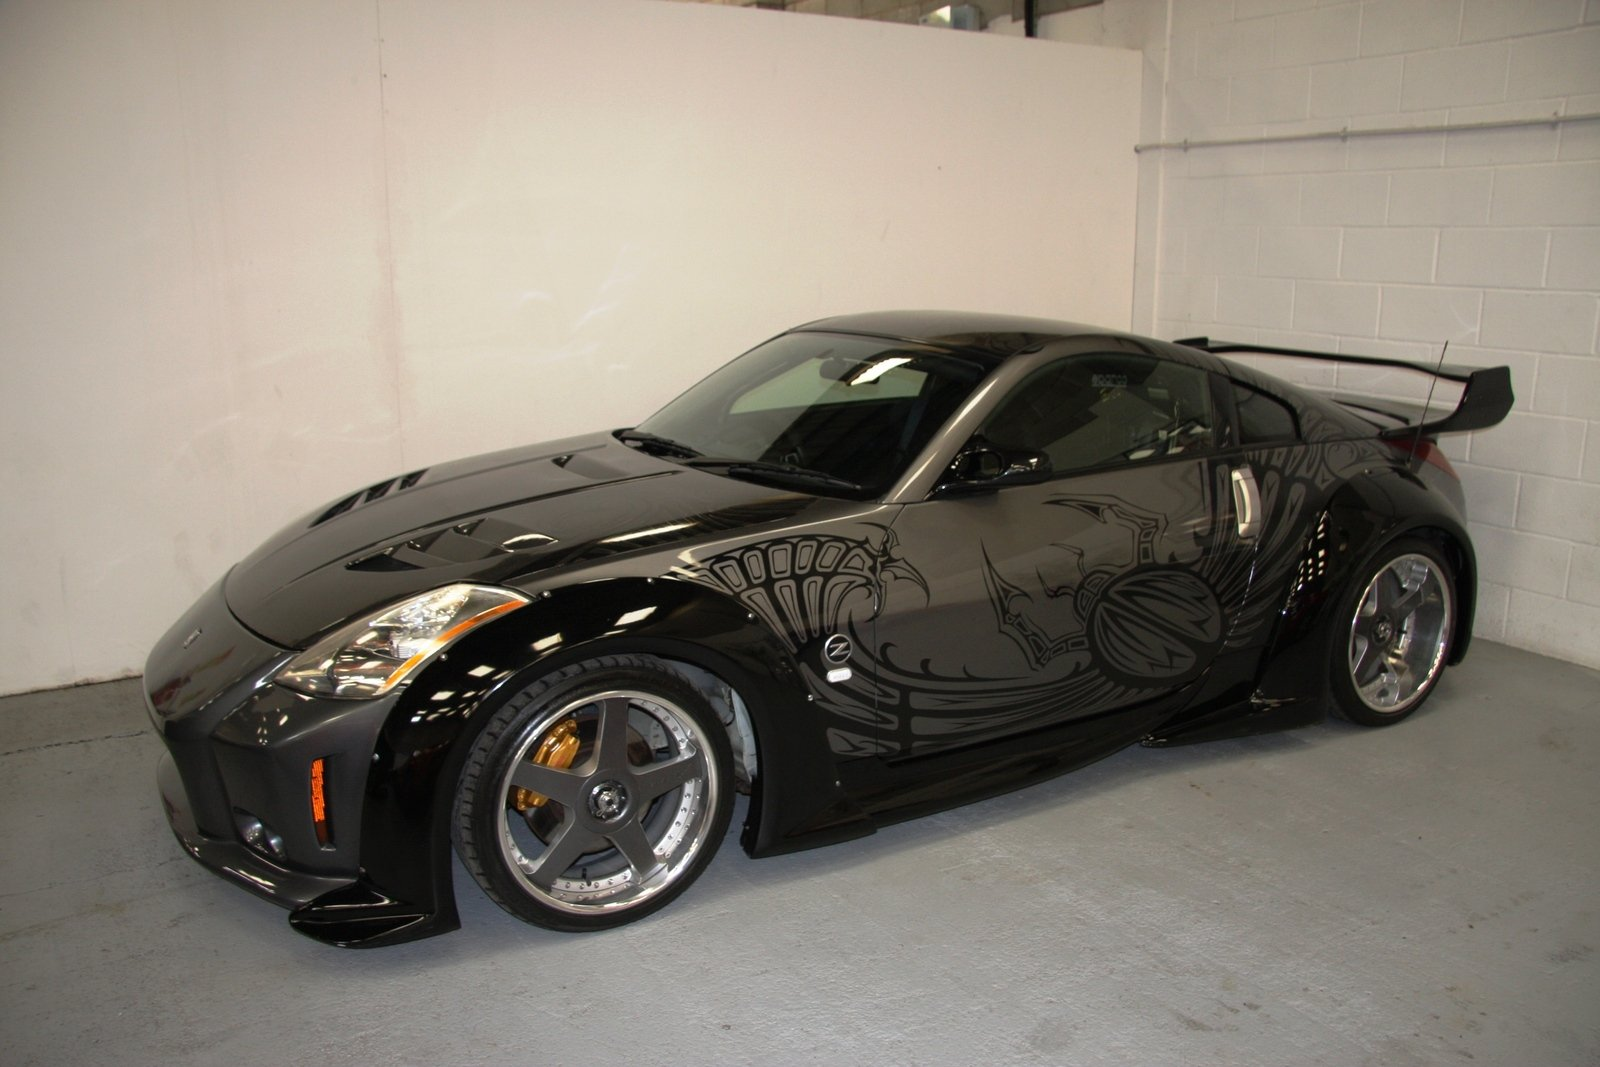 2003 nissan 350z tokyo drift picture 639207 car review. Black Bedroom Furniture Sets. Home Design Ideas